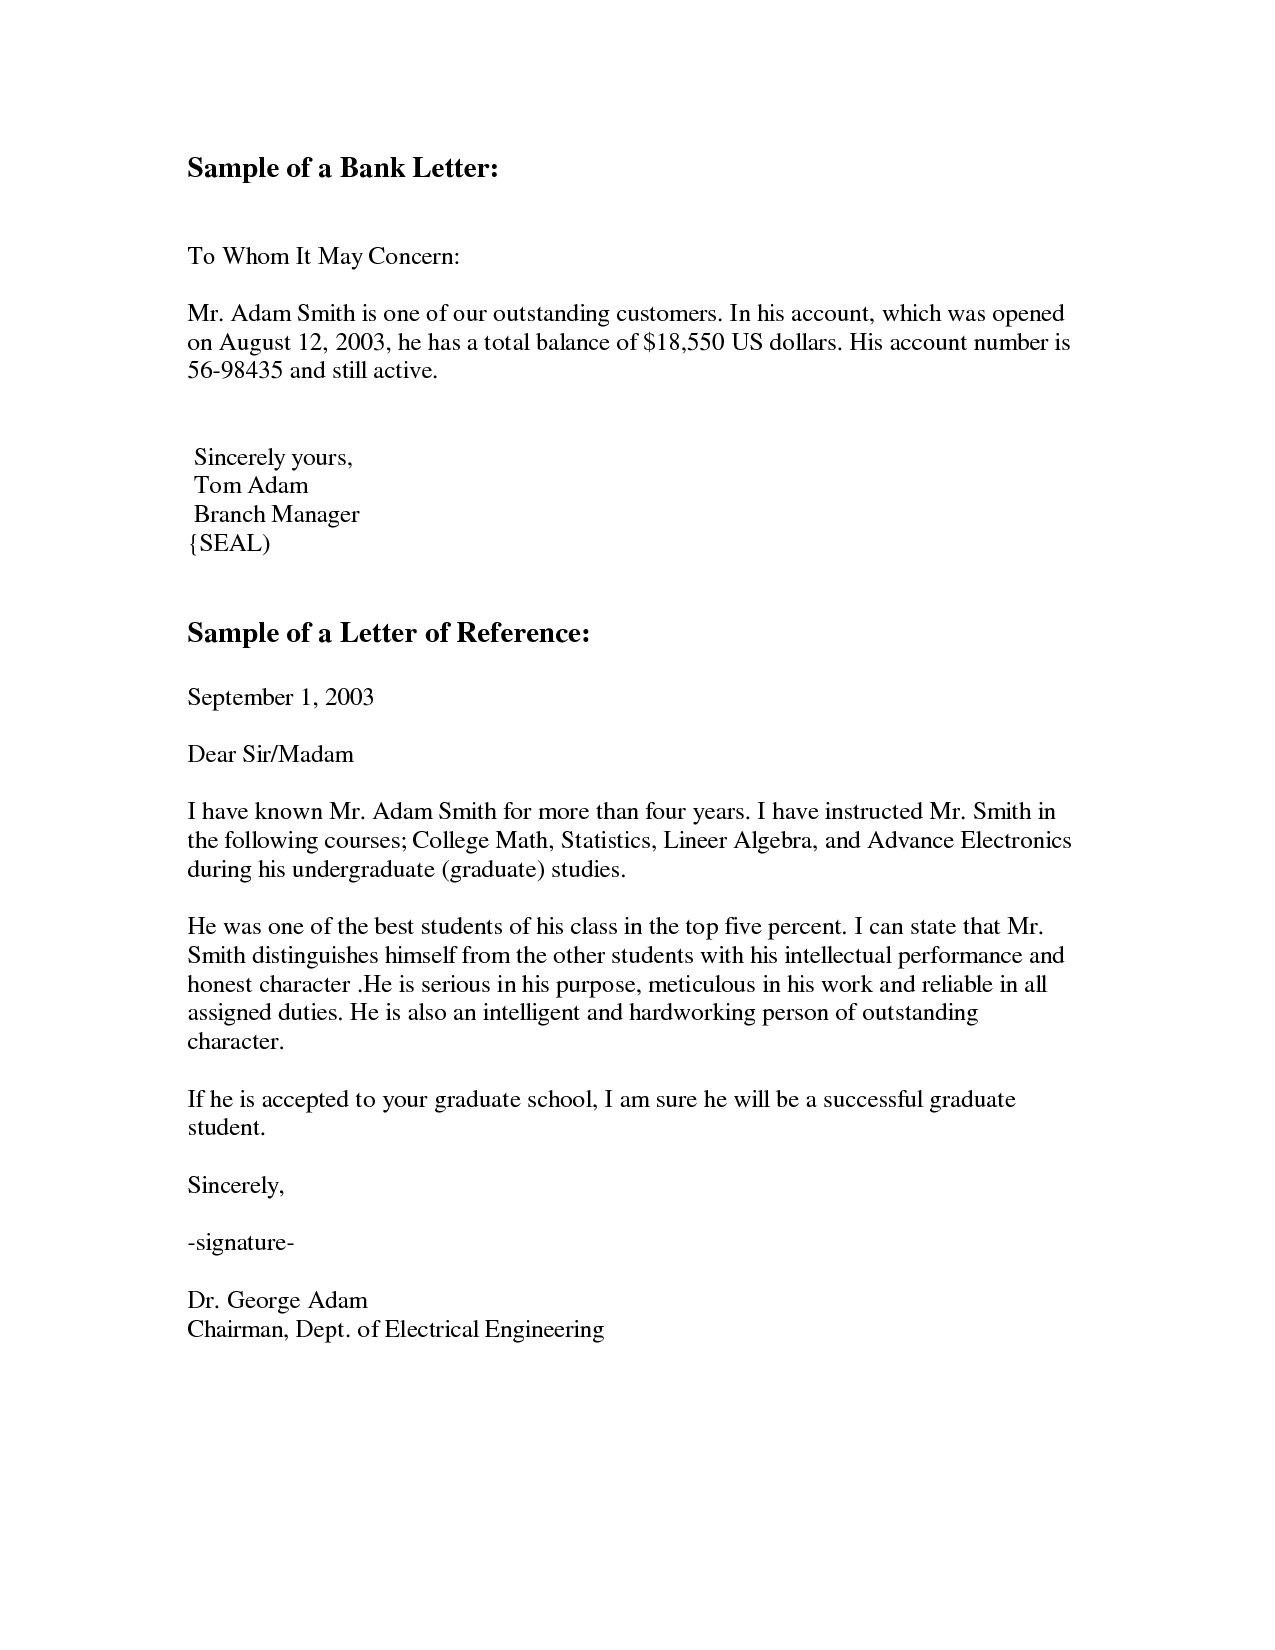 Professional Letter Of Recommendation Template - Writing A Letter Re Mendation for A Student for A Job Save